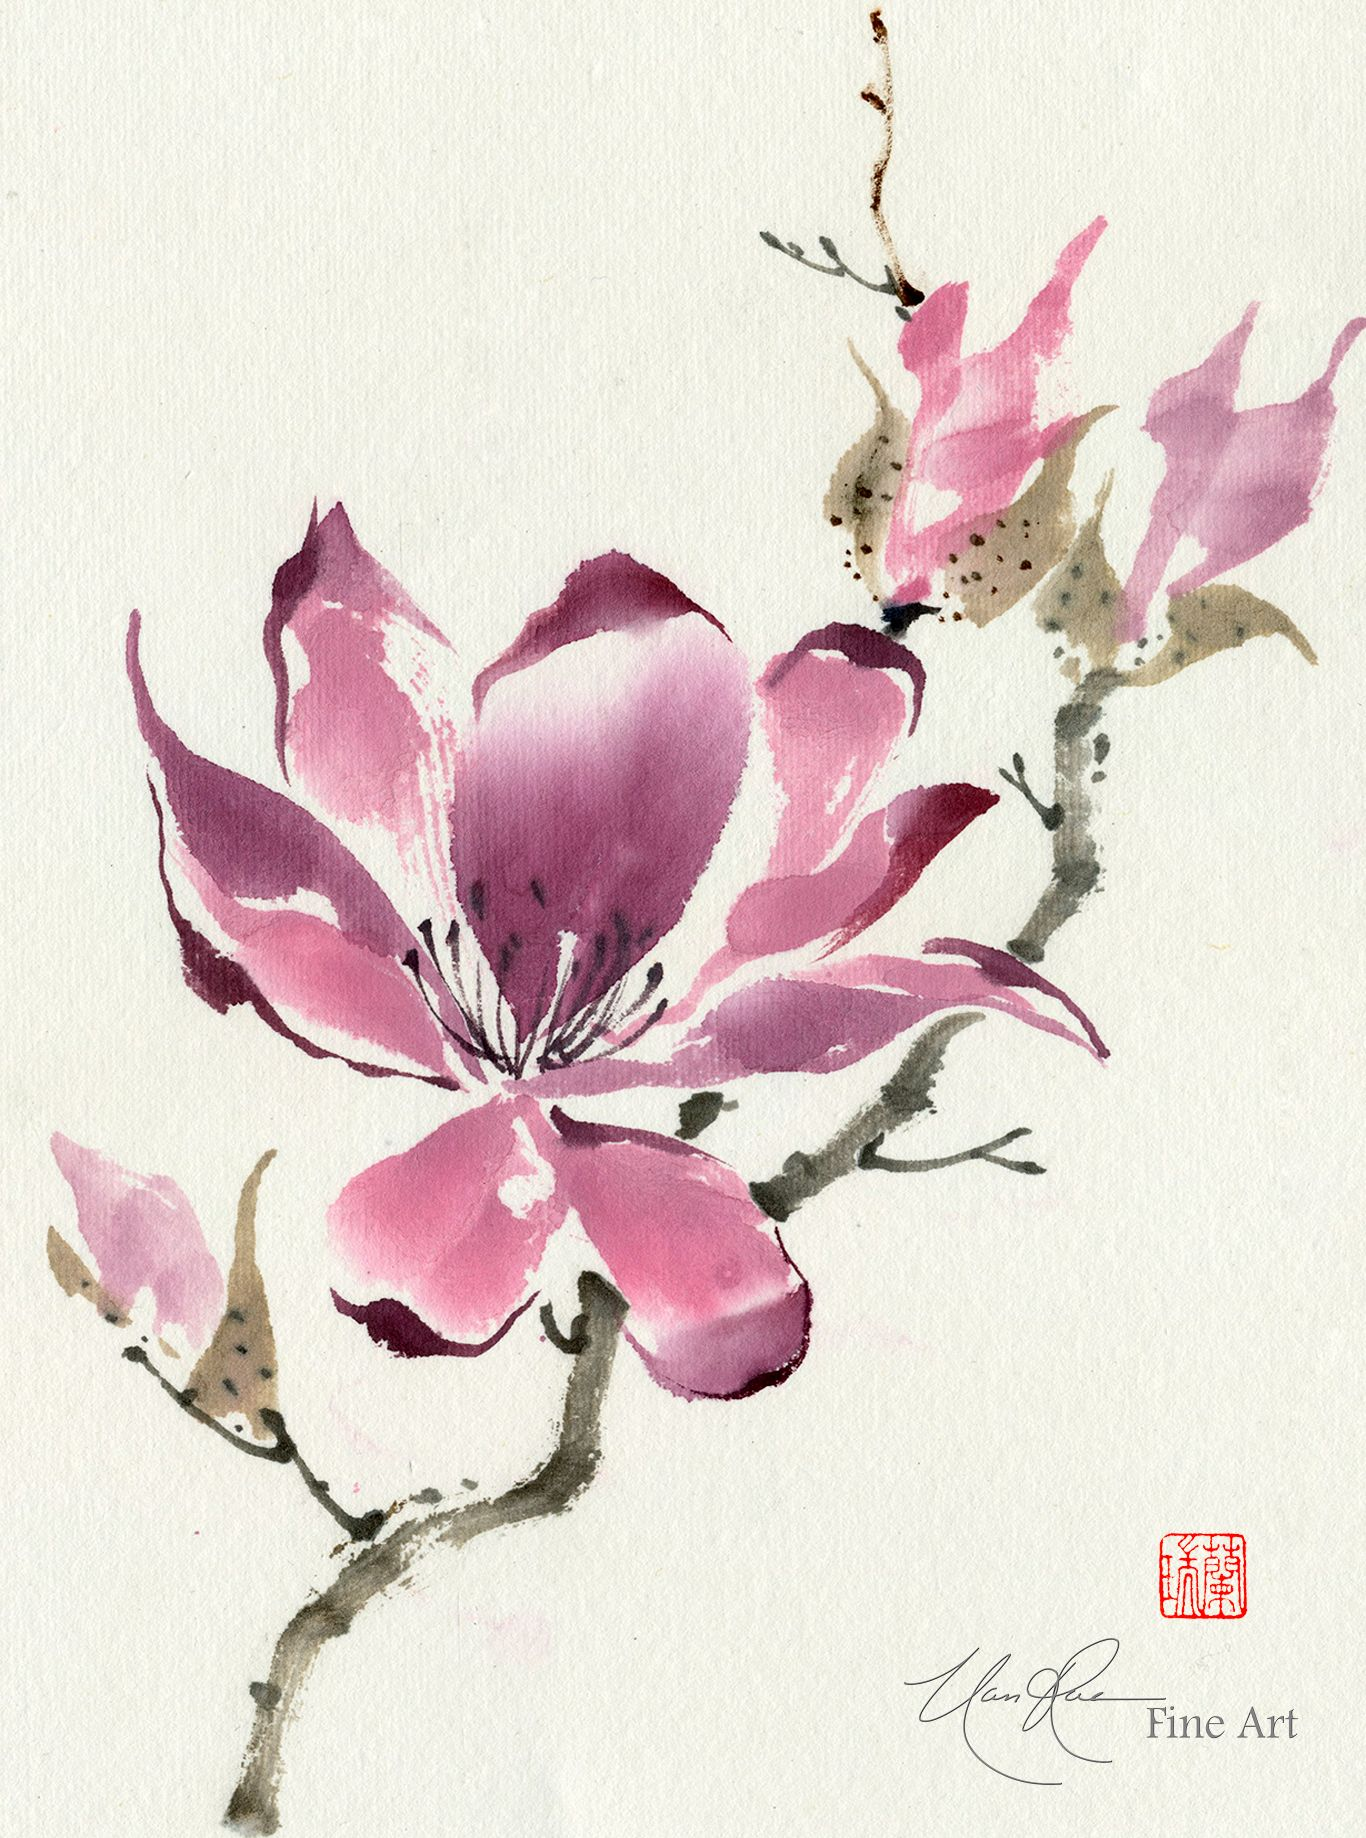 Chinese Magnolia The Unfolding Original Brush Painting By